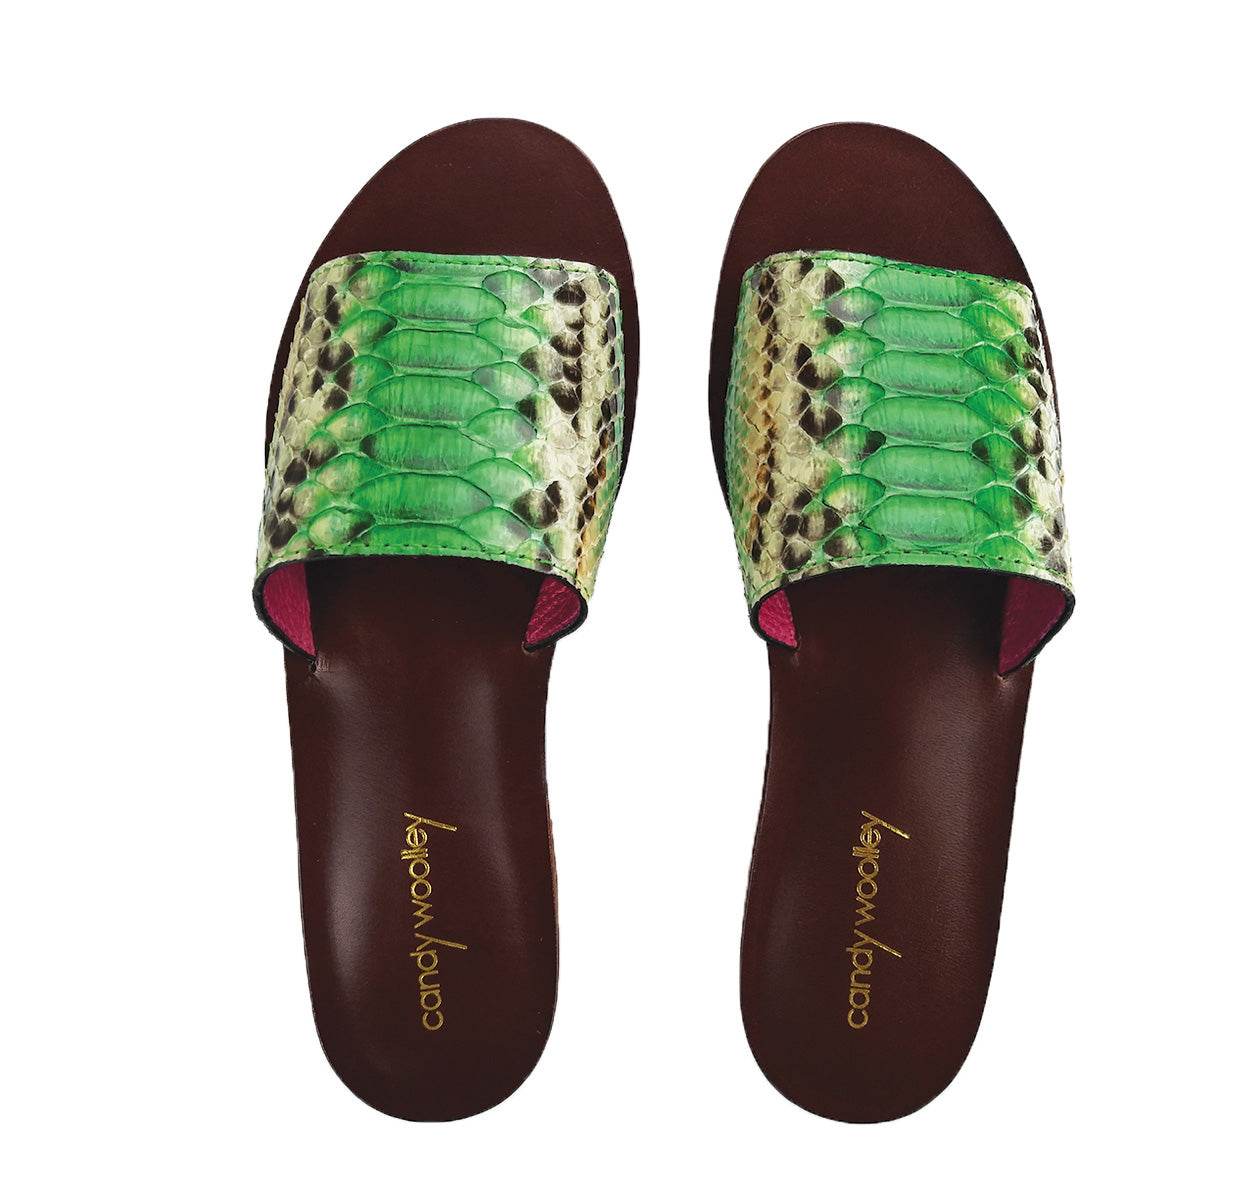 Genuine Python, Green & Cream Flat Slide Sandals. Size Available 7